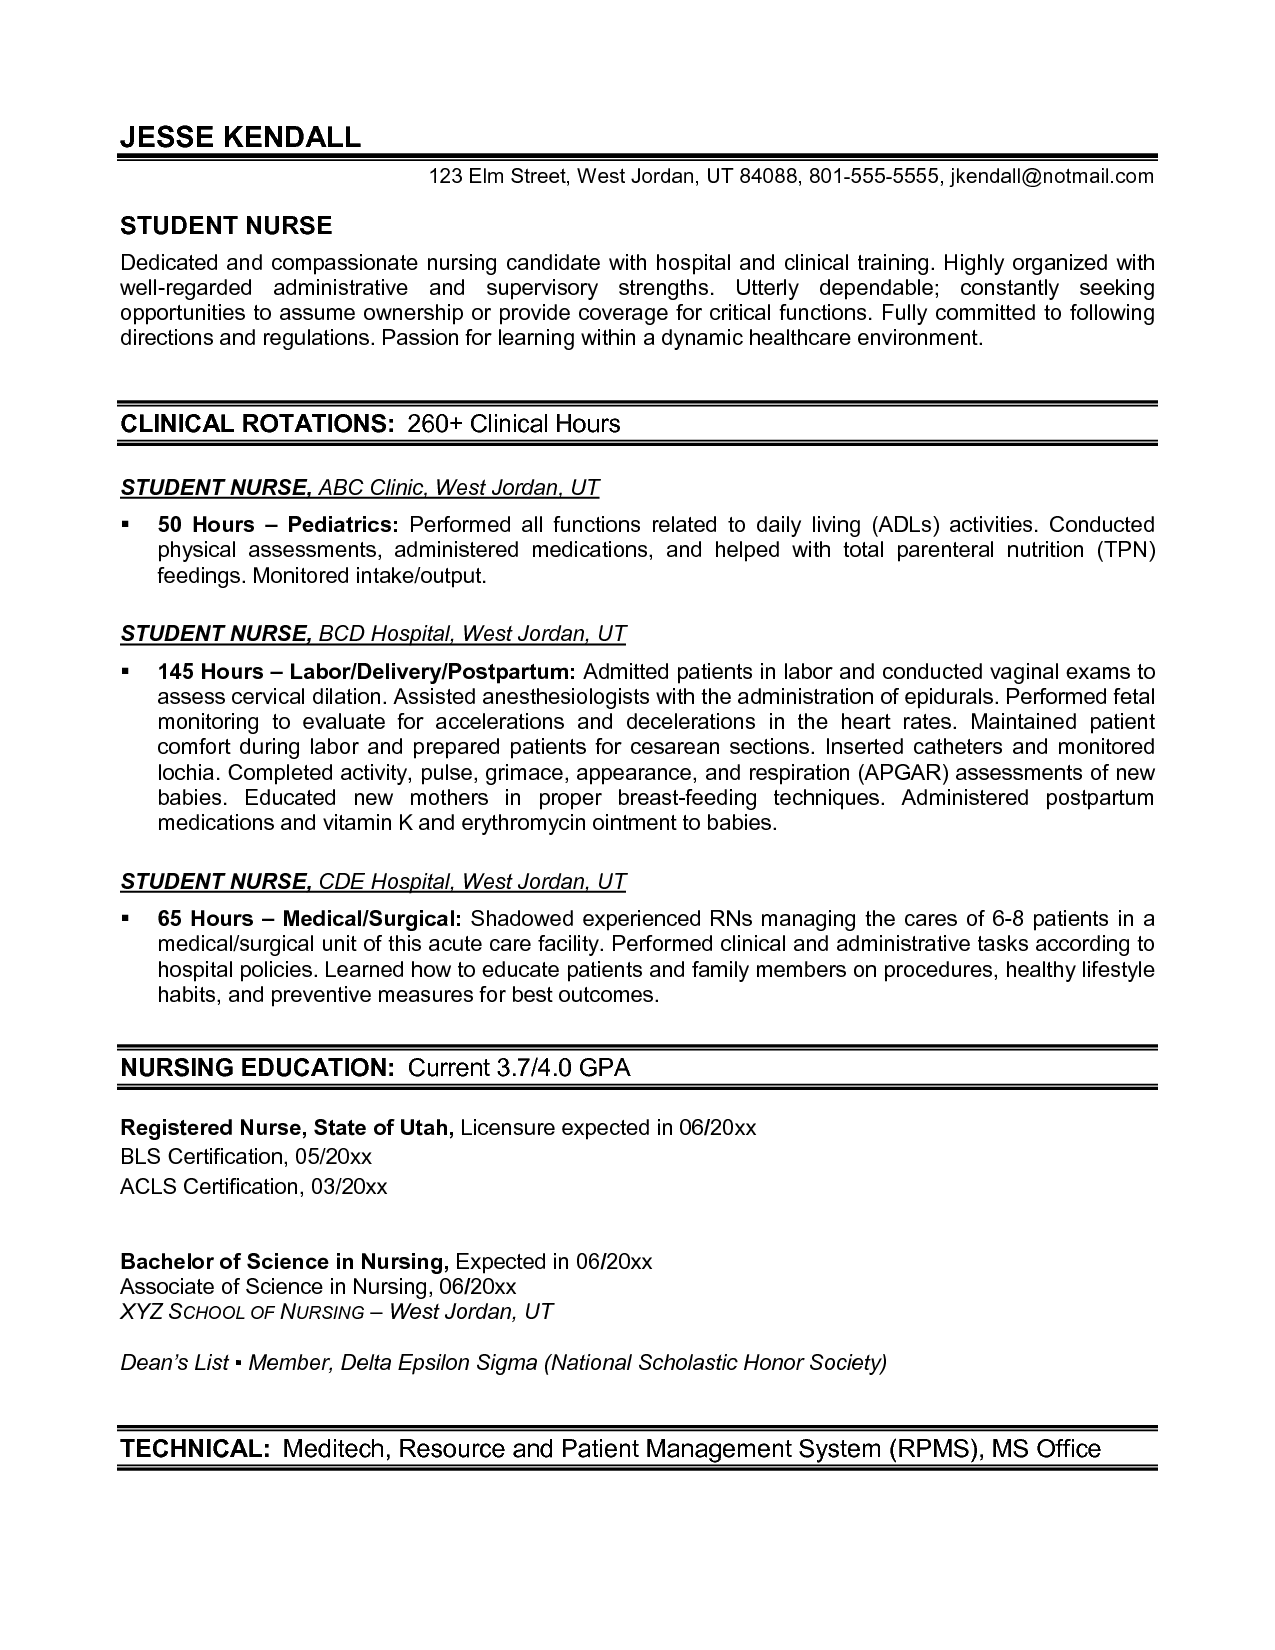 Magnificent Resumes For Nurses Gallery Resume Template Samples